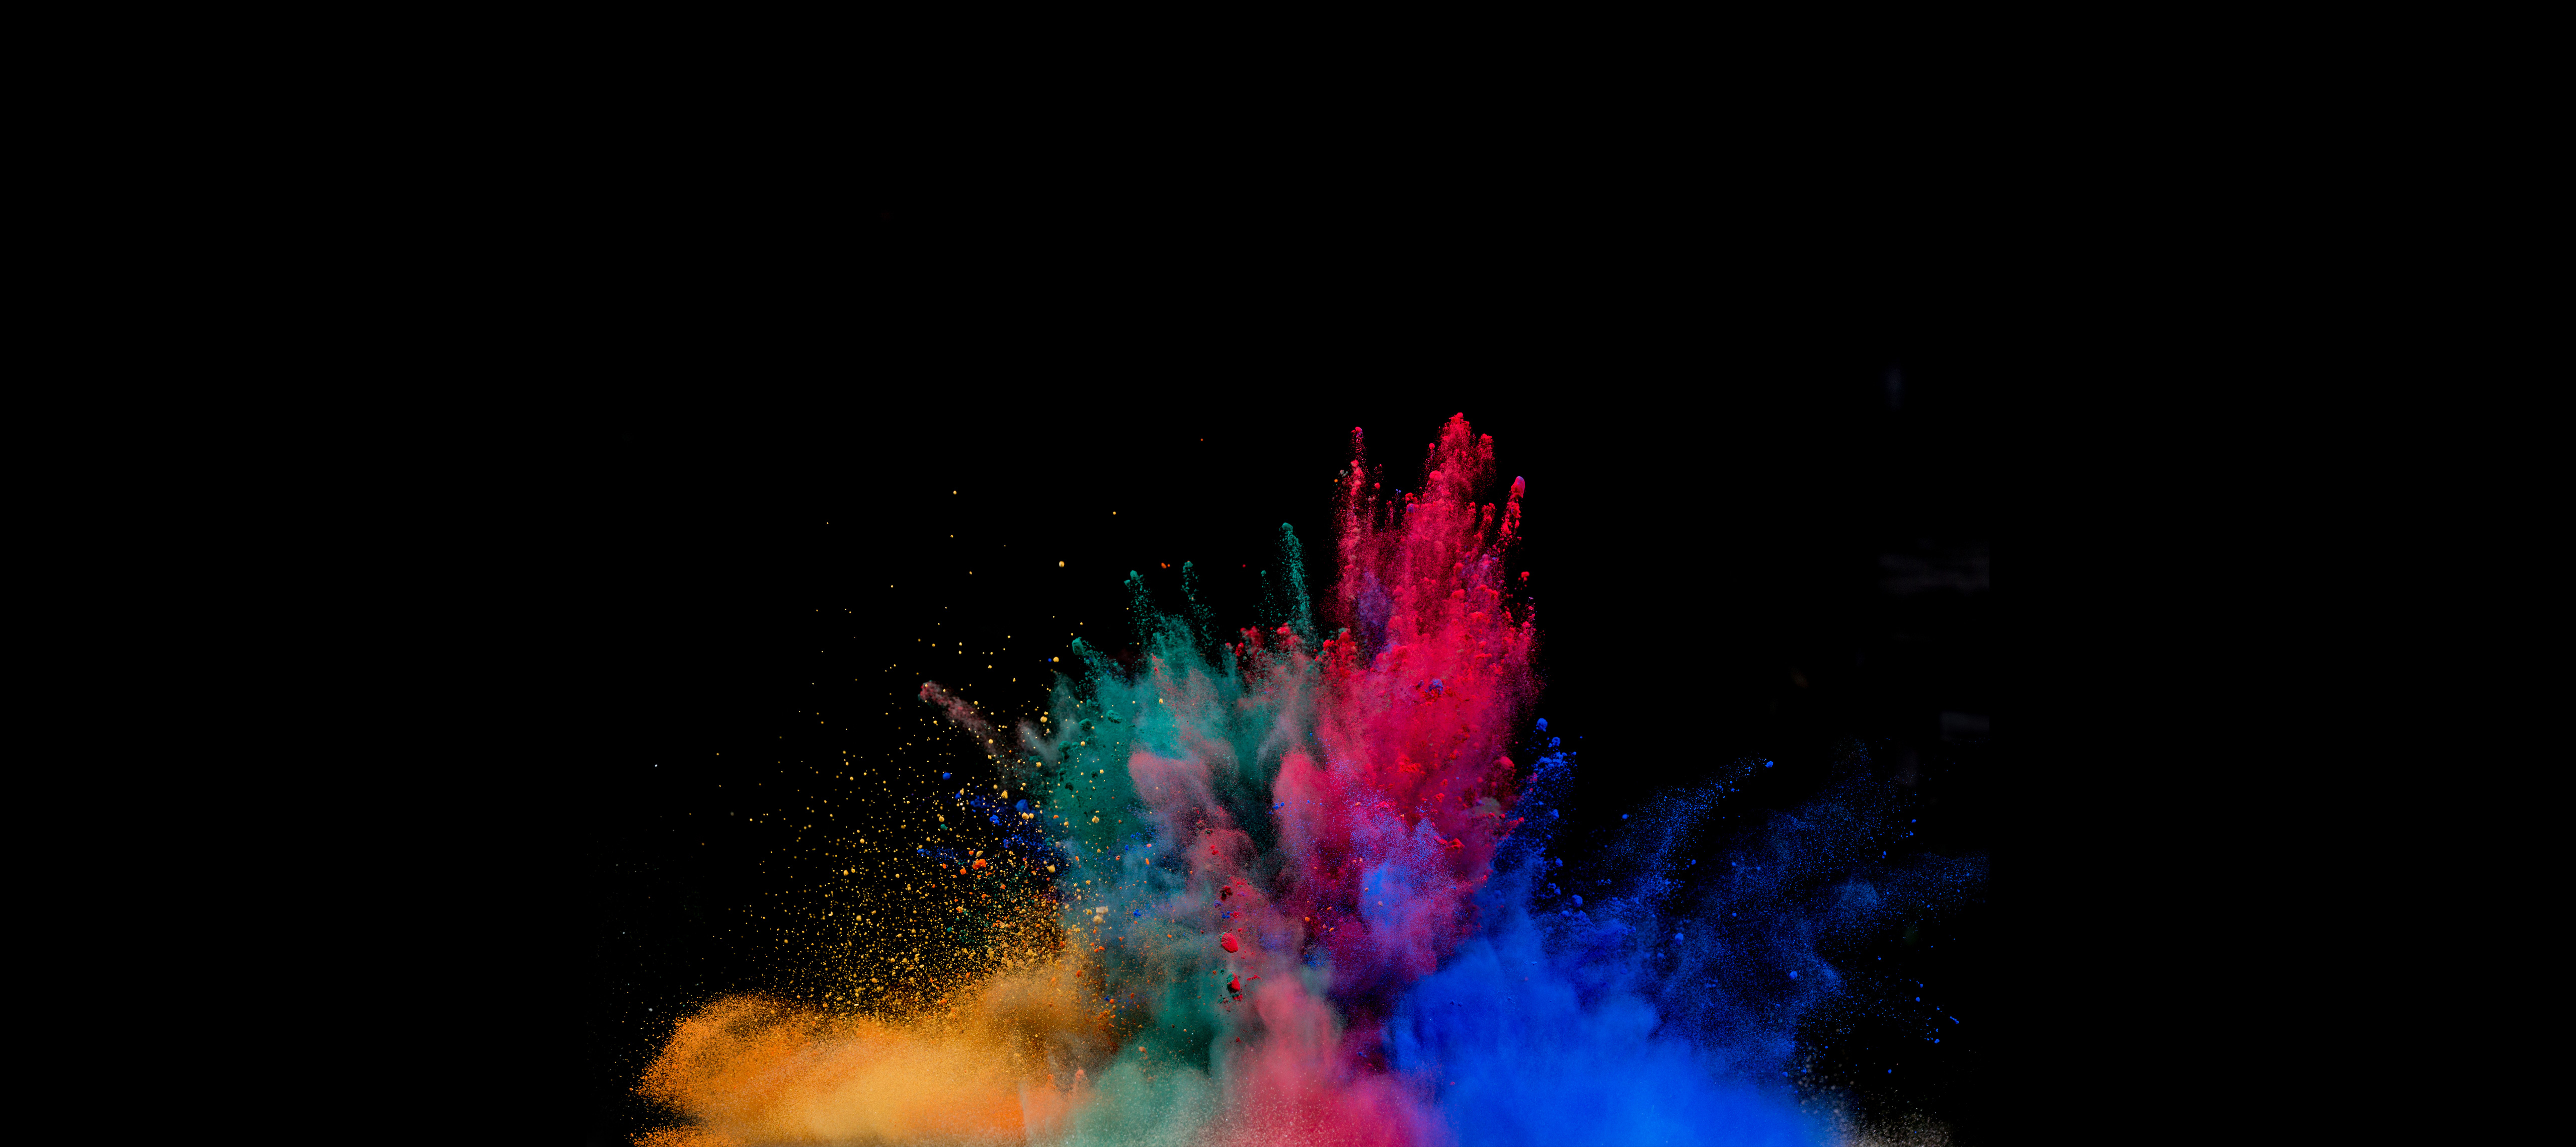 2560x1440 Colorful Powder Explosion 1440p Resolution Wallpaper Hd Artist 4k Wallpapers Images Photos And Background